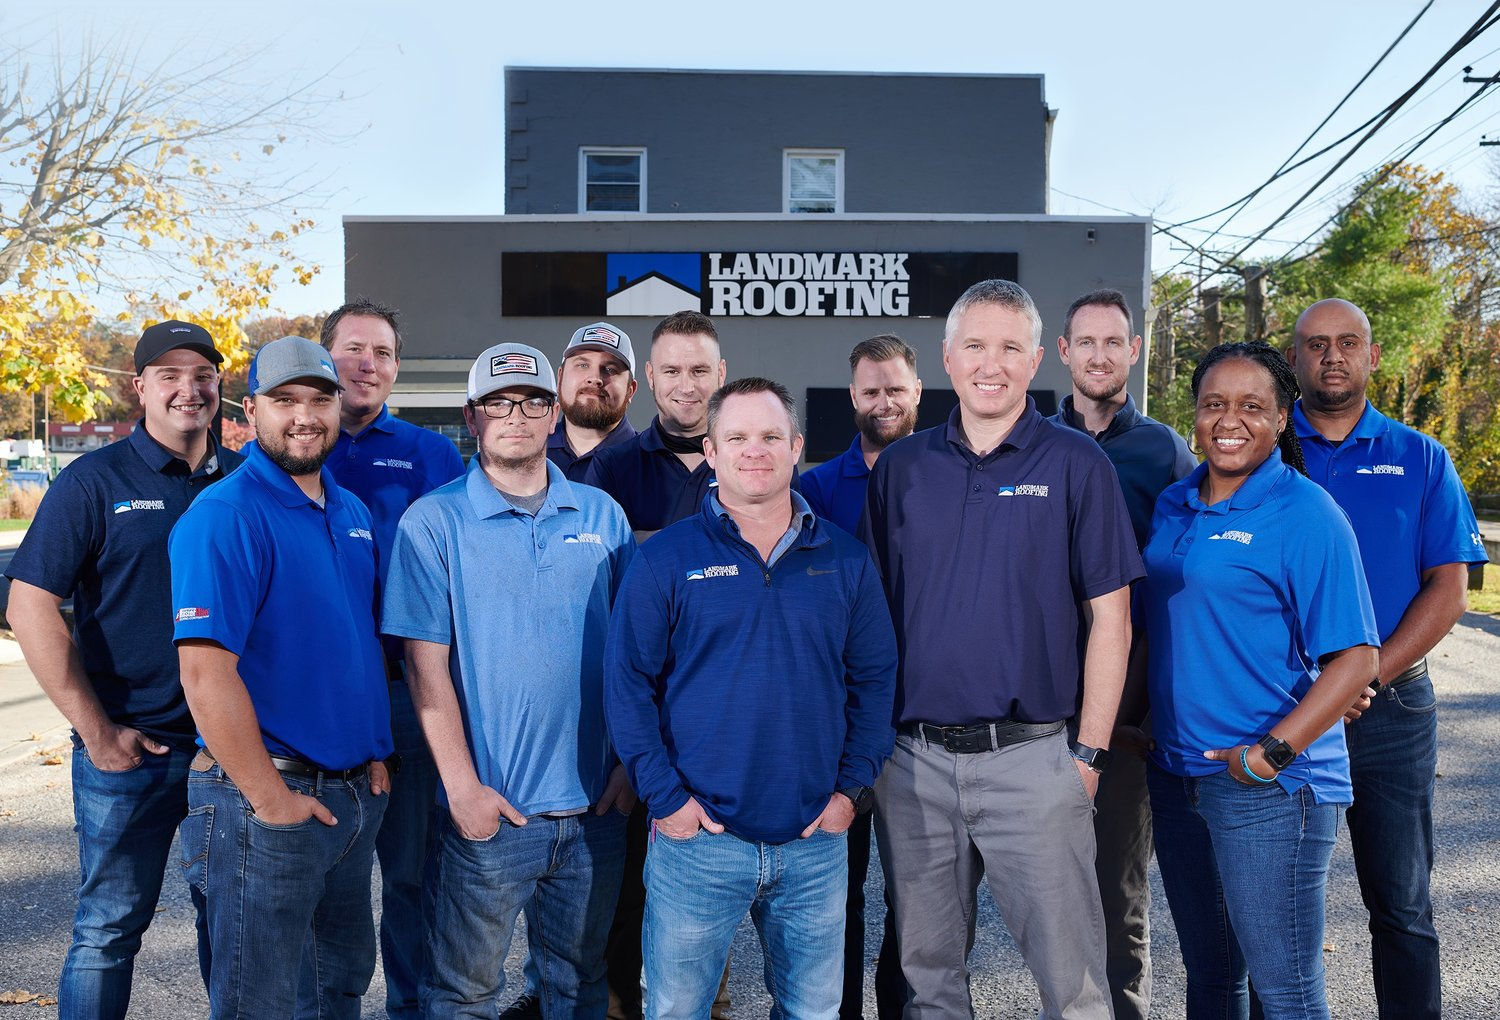 Landmark Roofing has built countless connections in the community through the company but also through charitable endeavors.